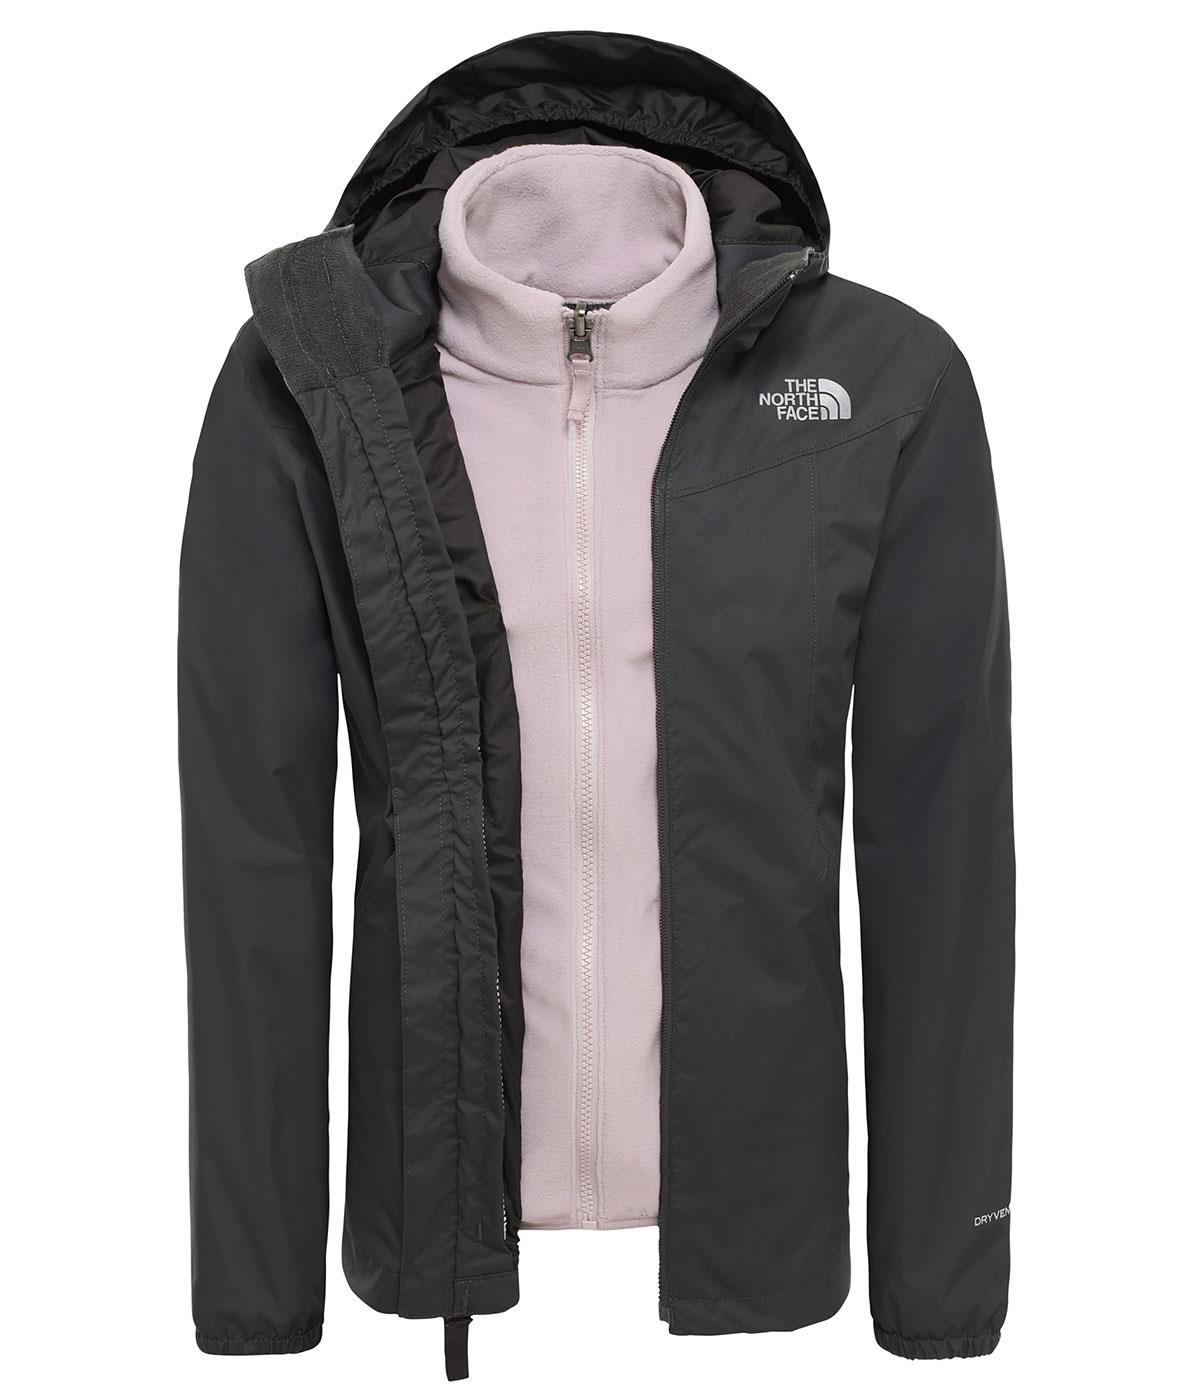 The North Face  Eliana Triceket nf0A3Yf40C51